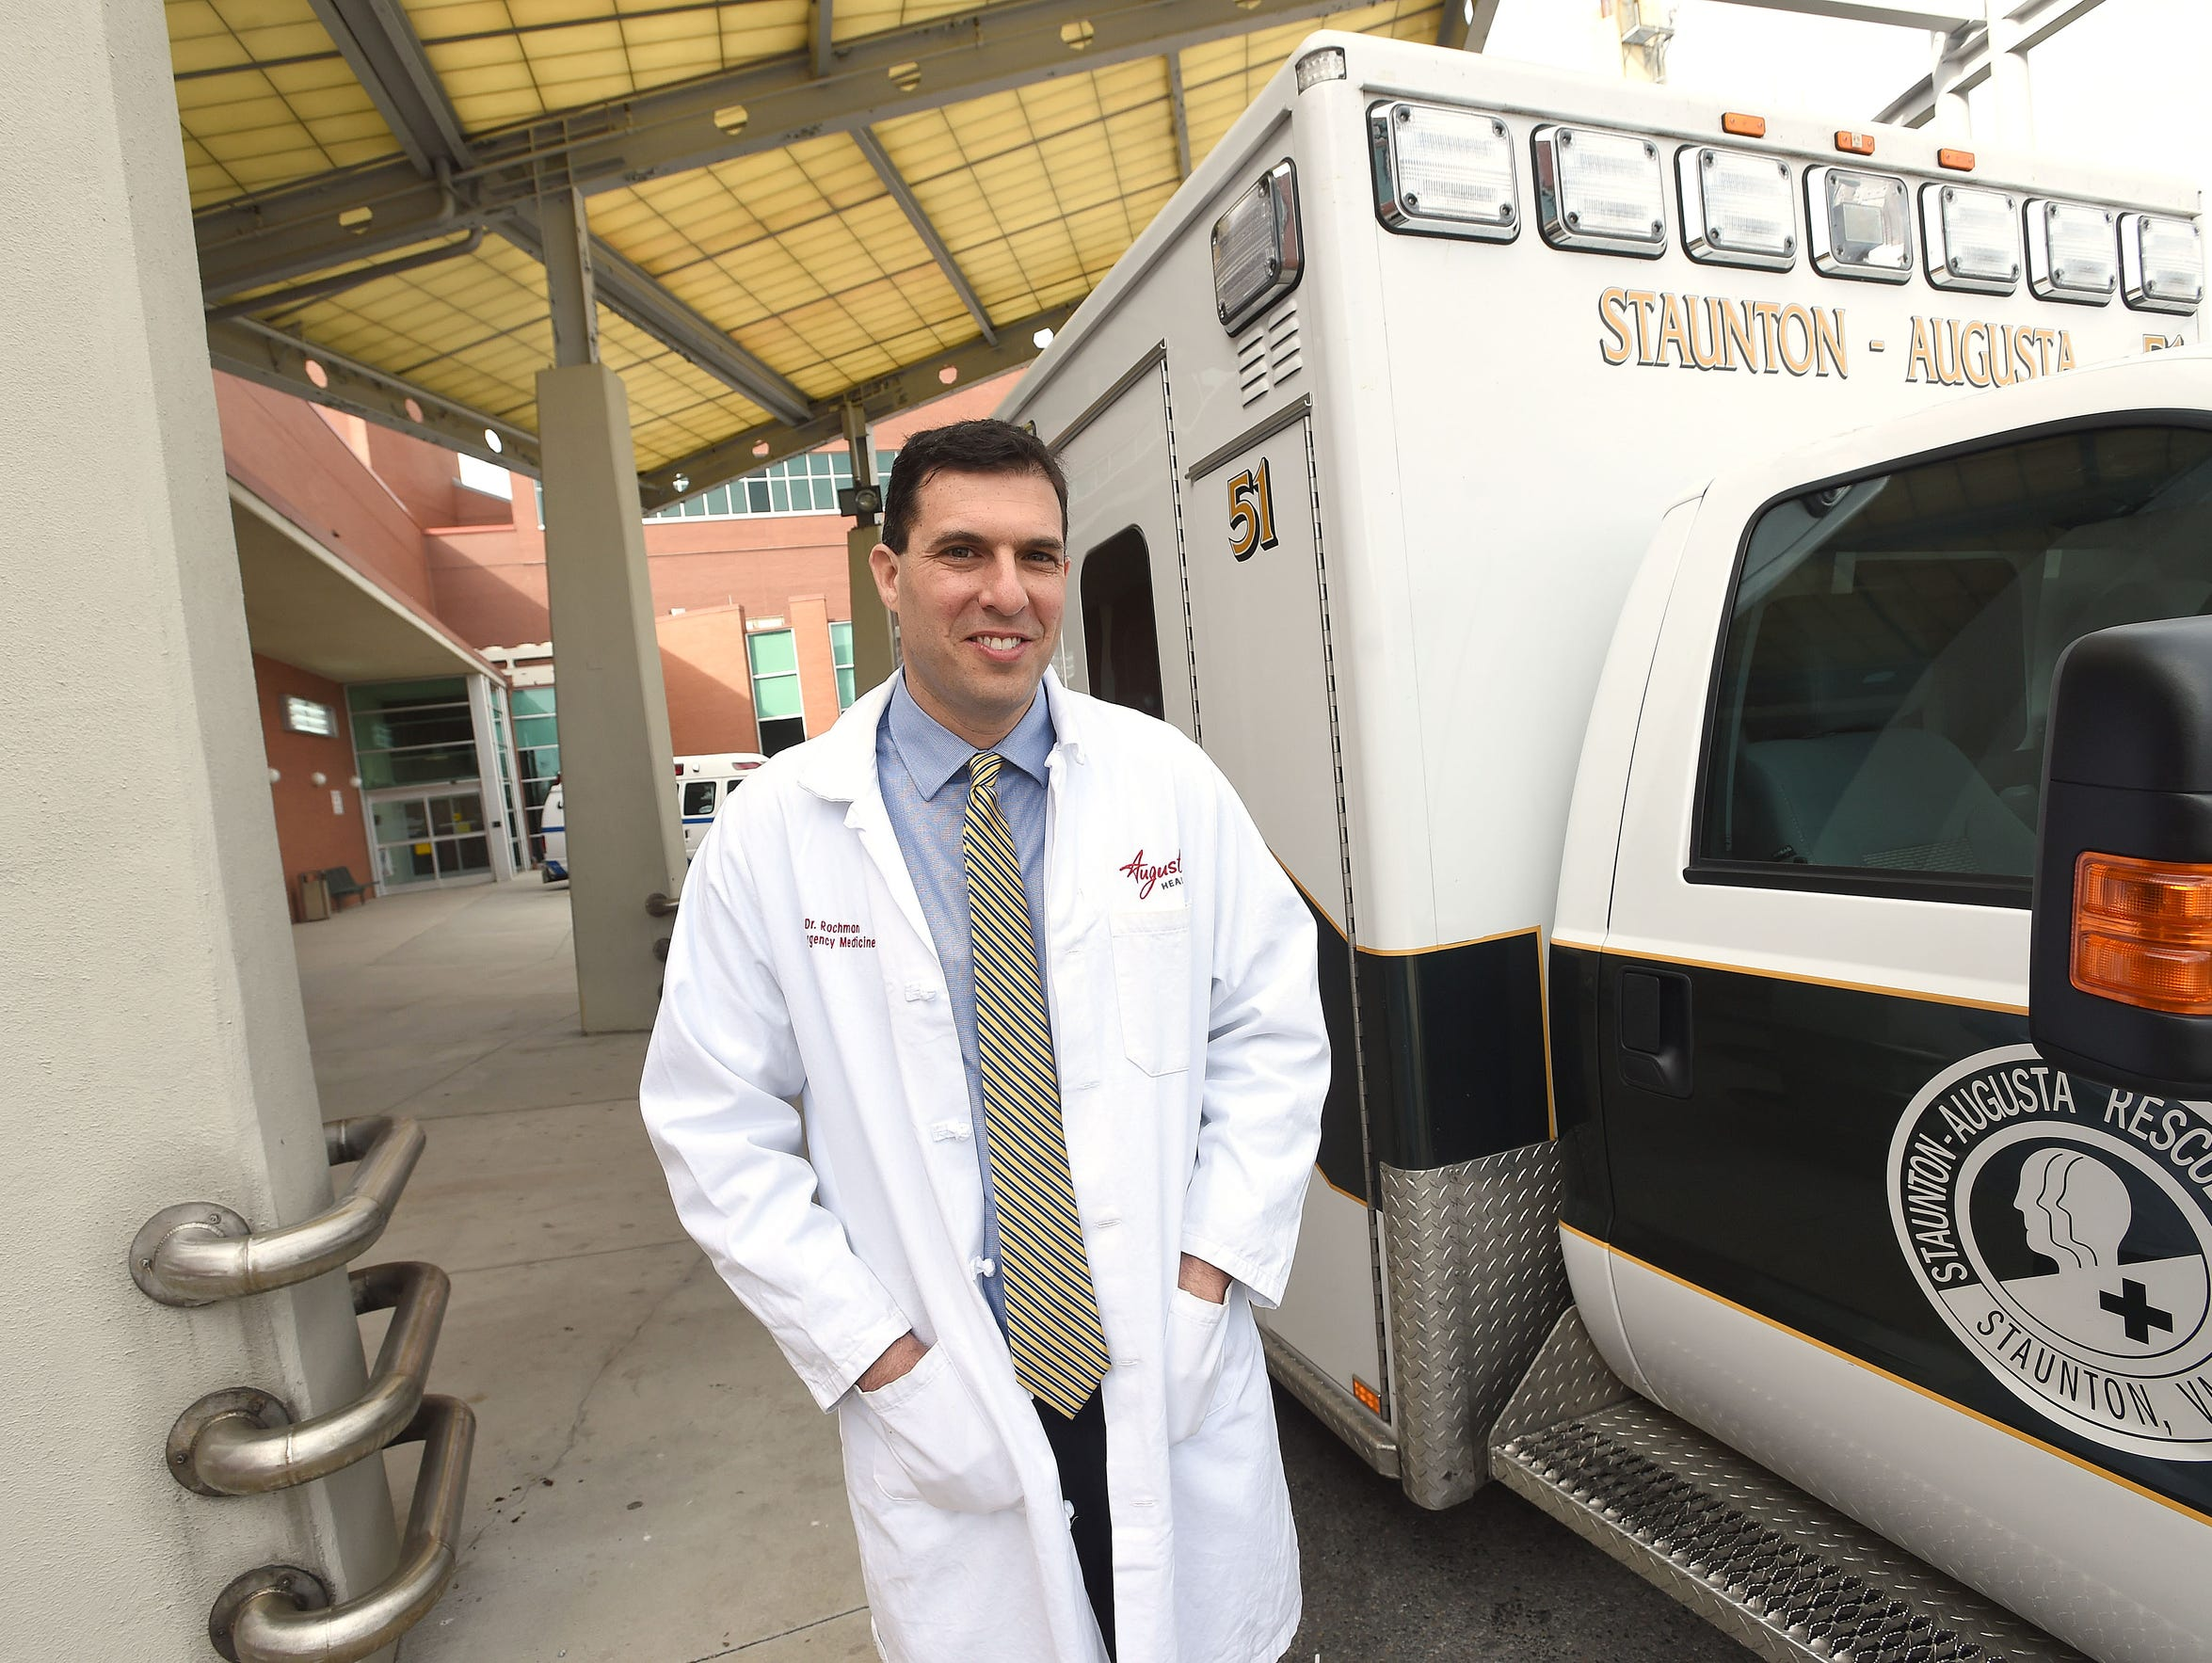 Dr. Adam Rochman serves as medical director of the